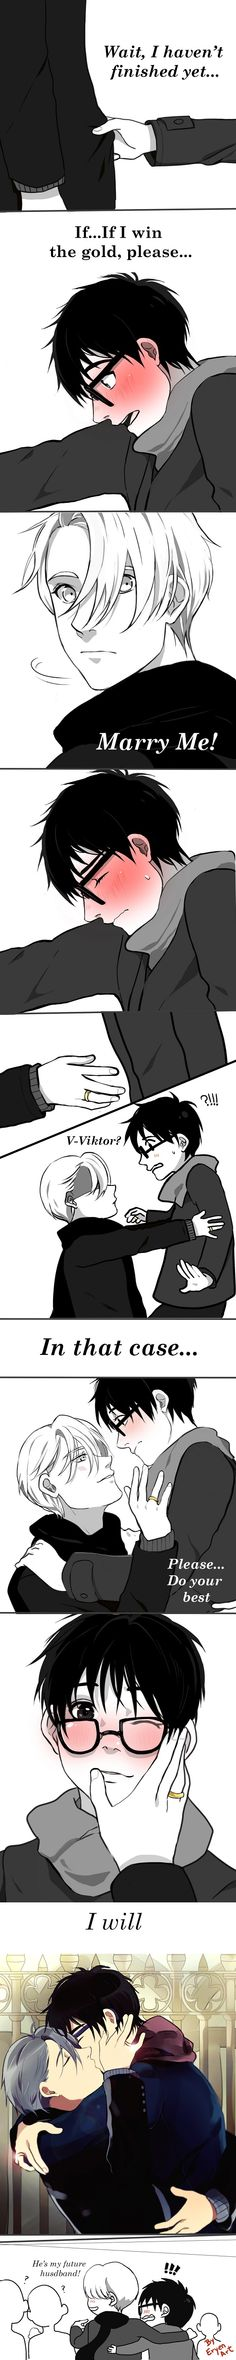 Victuuri by EryenArt on DeviantArt